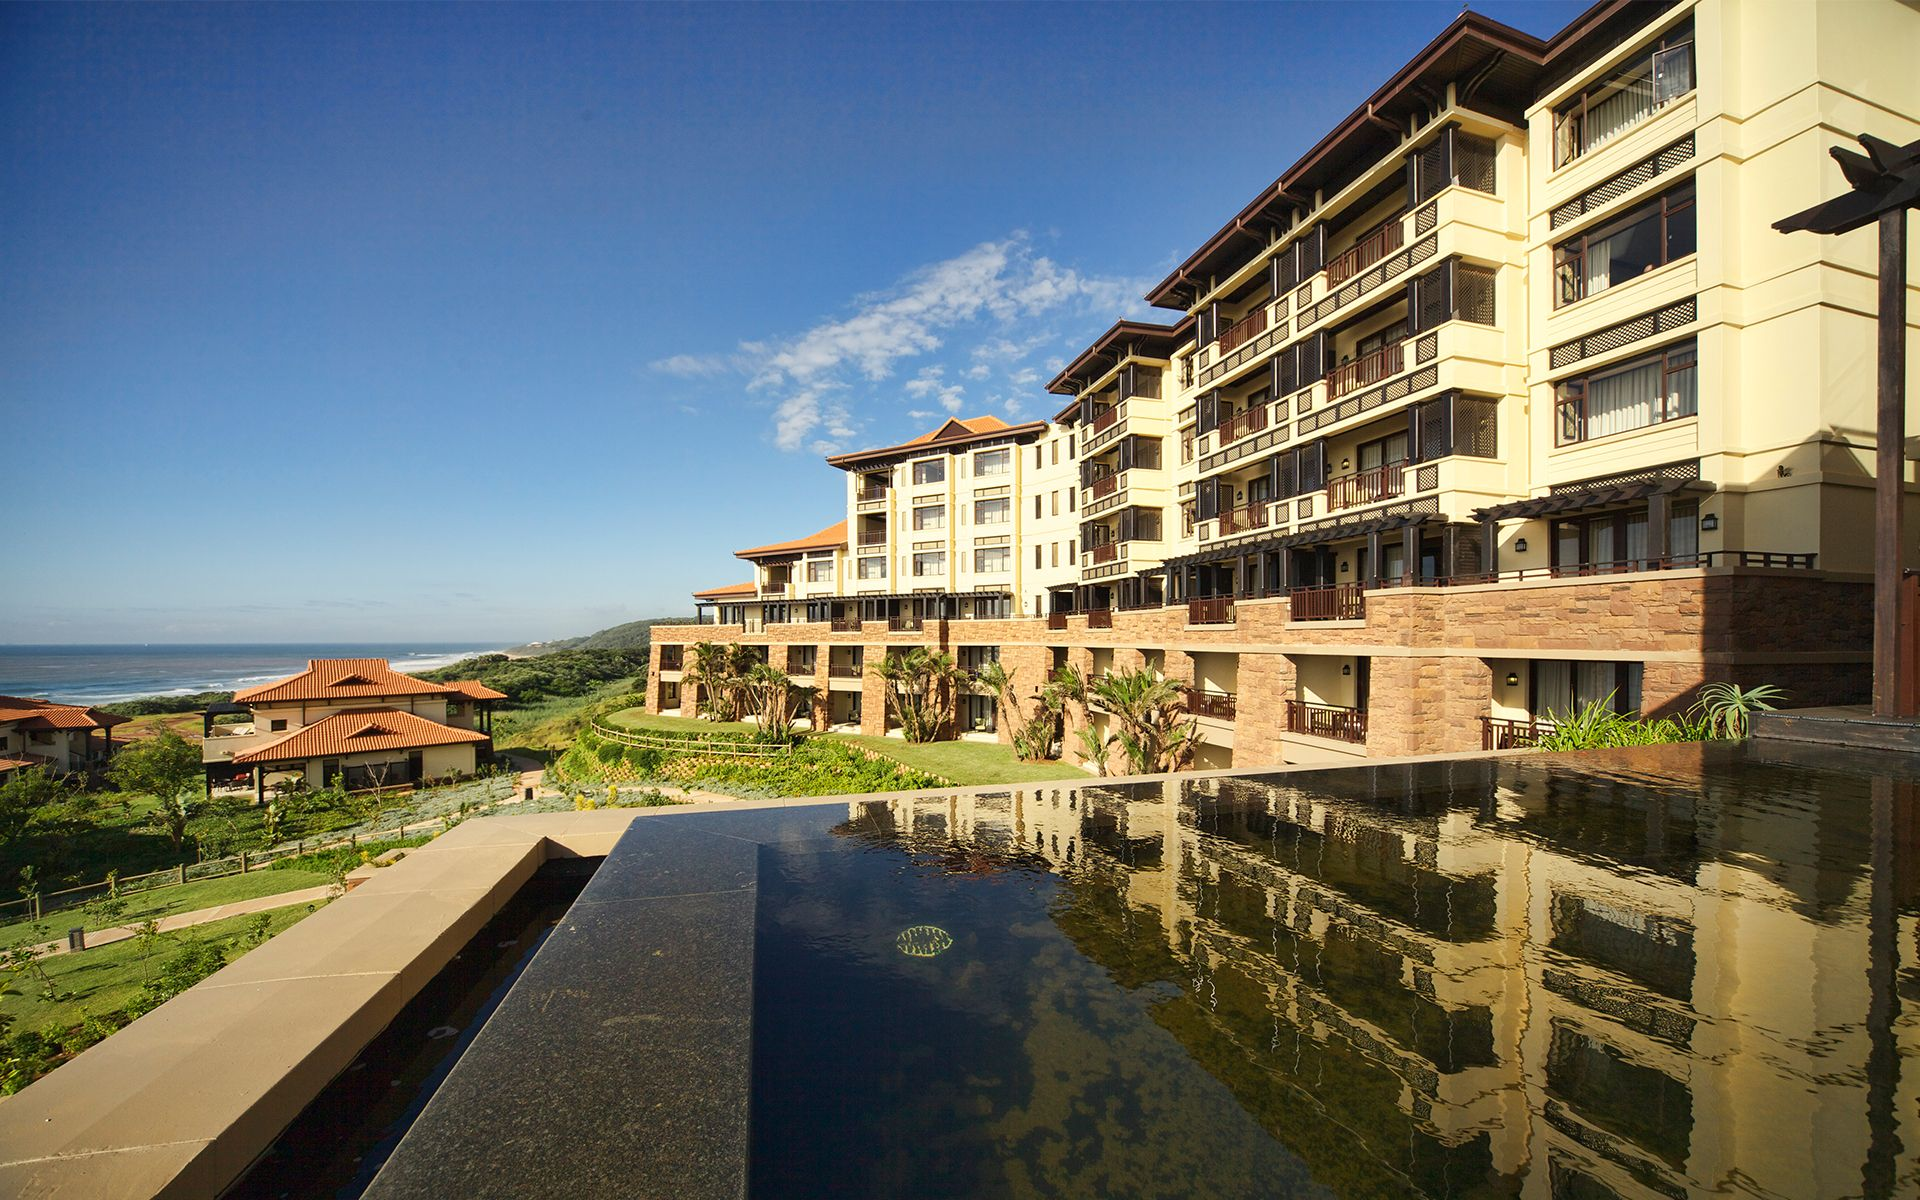 Fairmont zimbali resort south africa dsa architects - Fairmont hotels and resorts head office ...